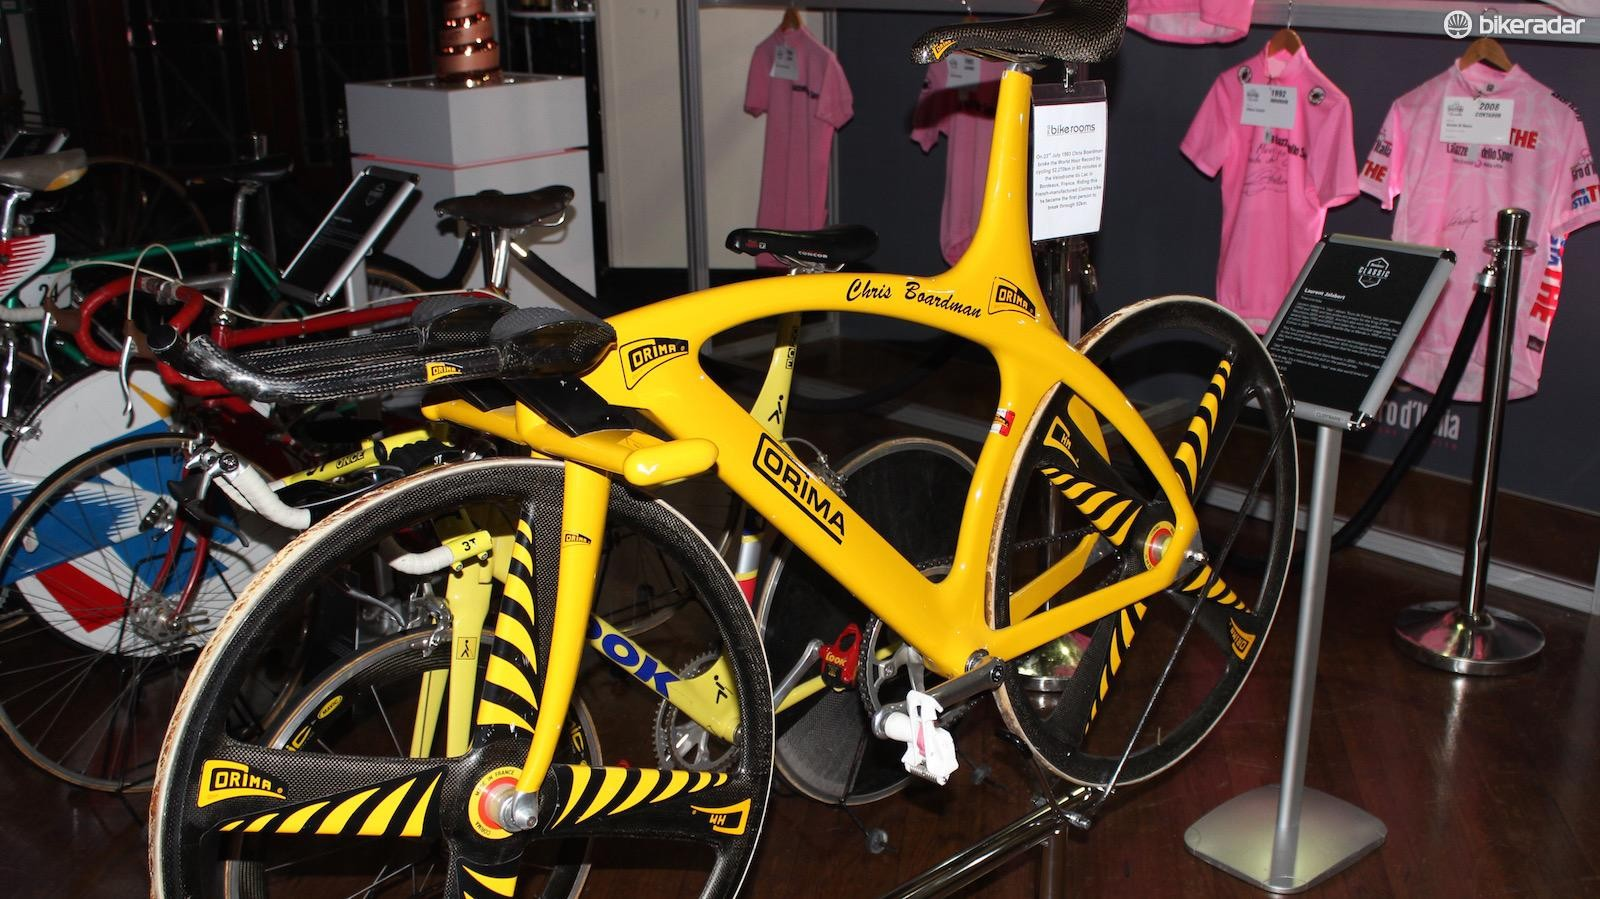 Chris Boardman's Corima hour record bike from 1993 made up one of the bikes in the Grand Tour Heritage Collection